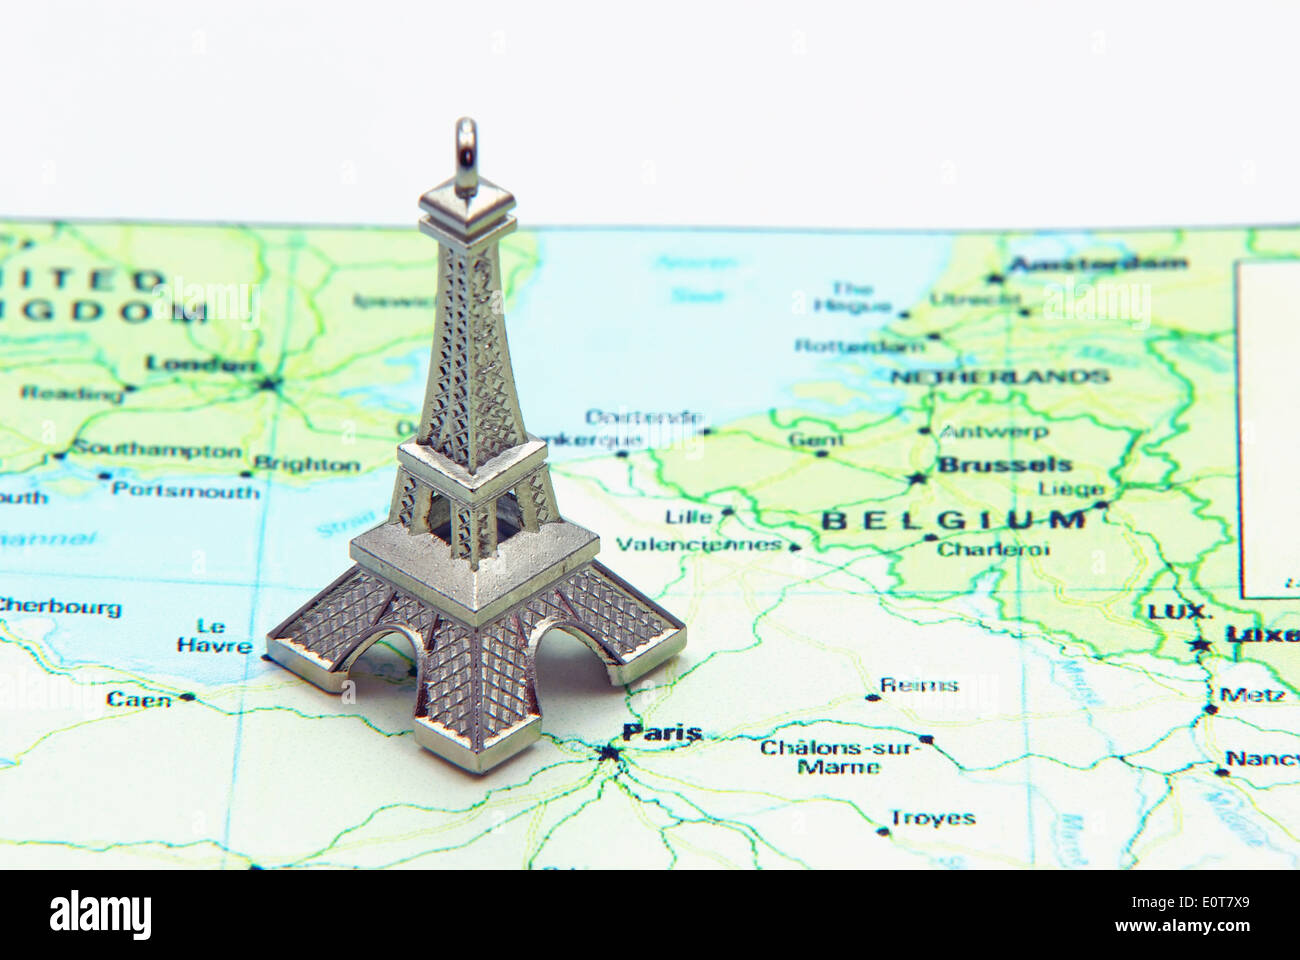 Statue of Eiffel Tower on a map of France Stock Photo